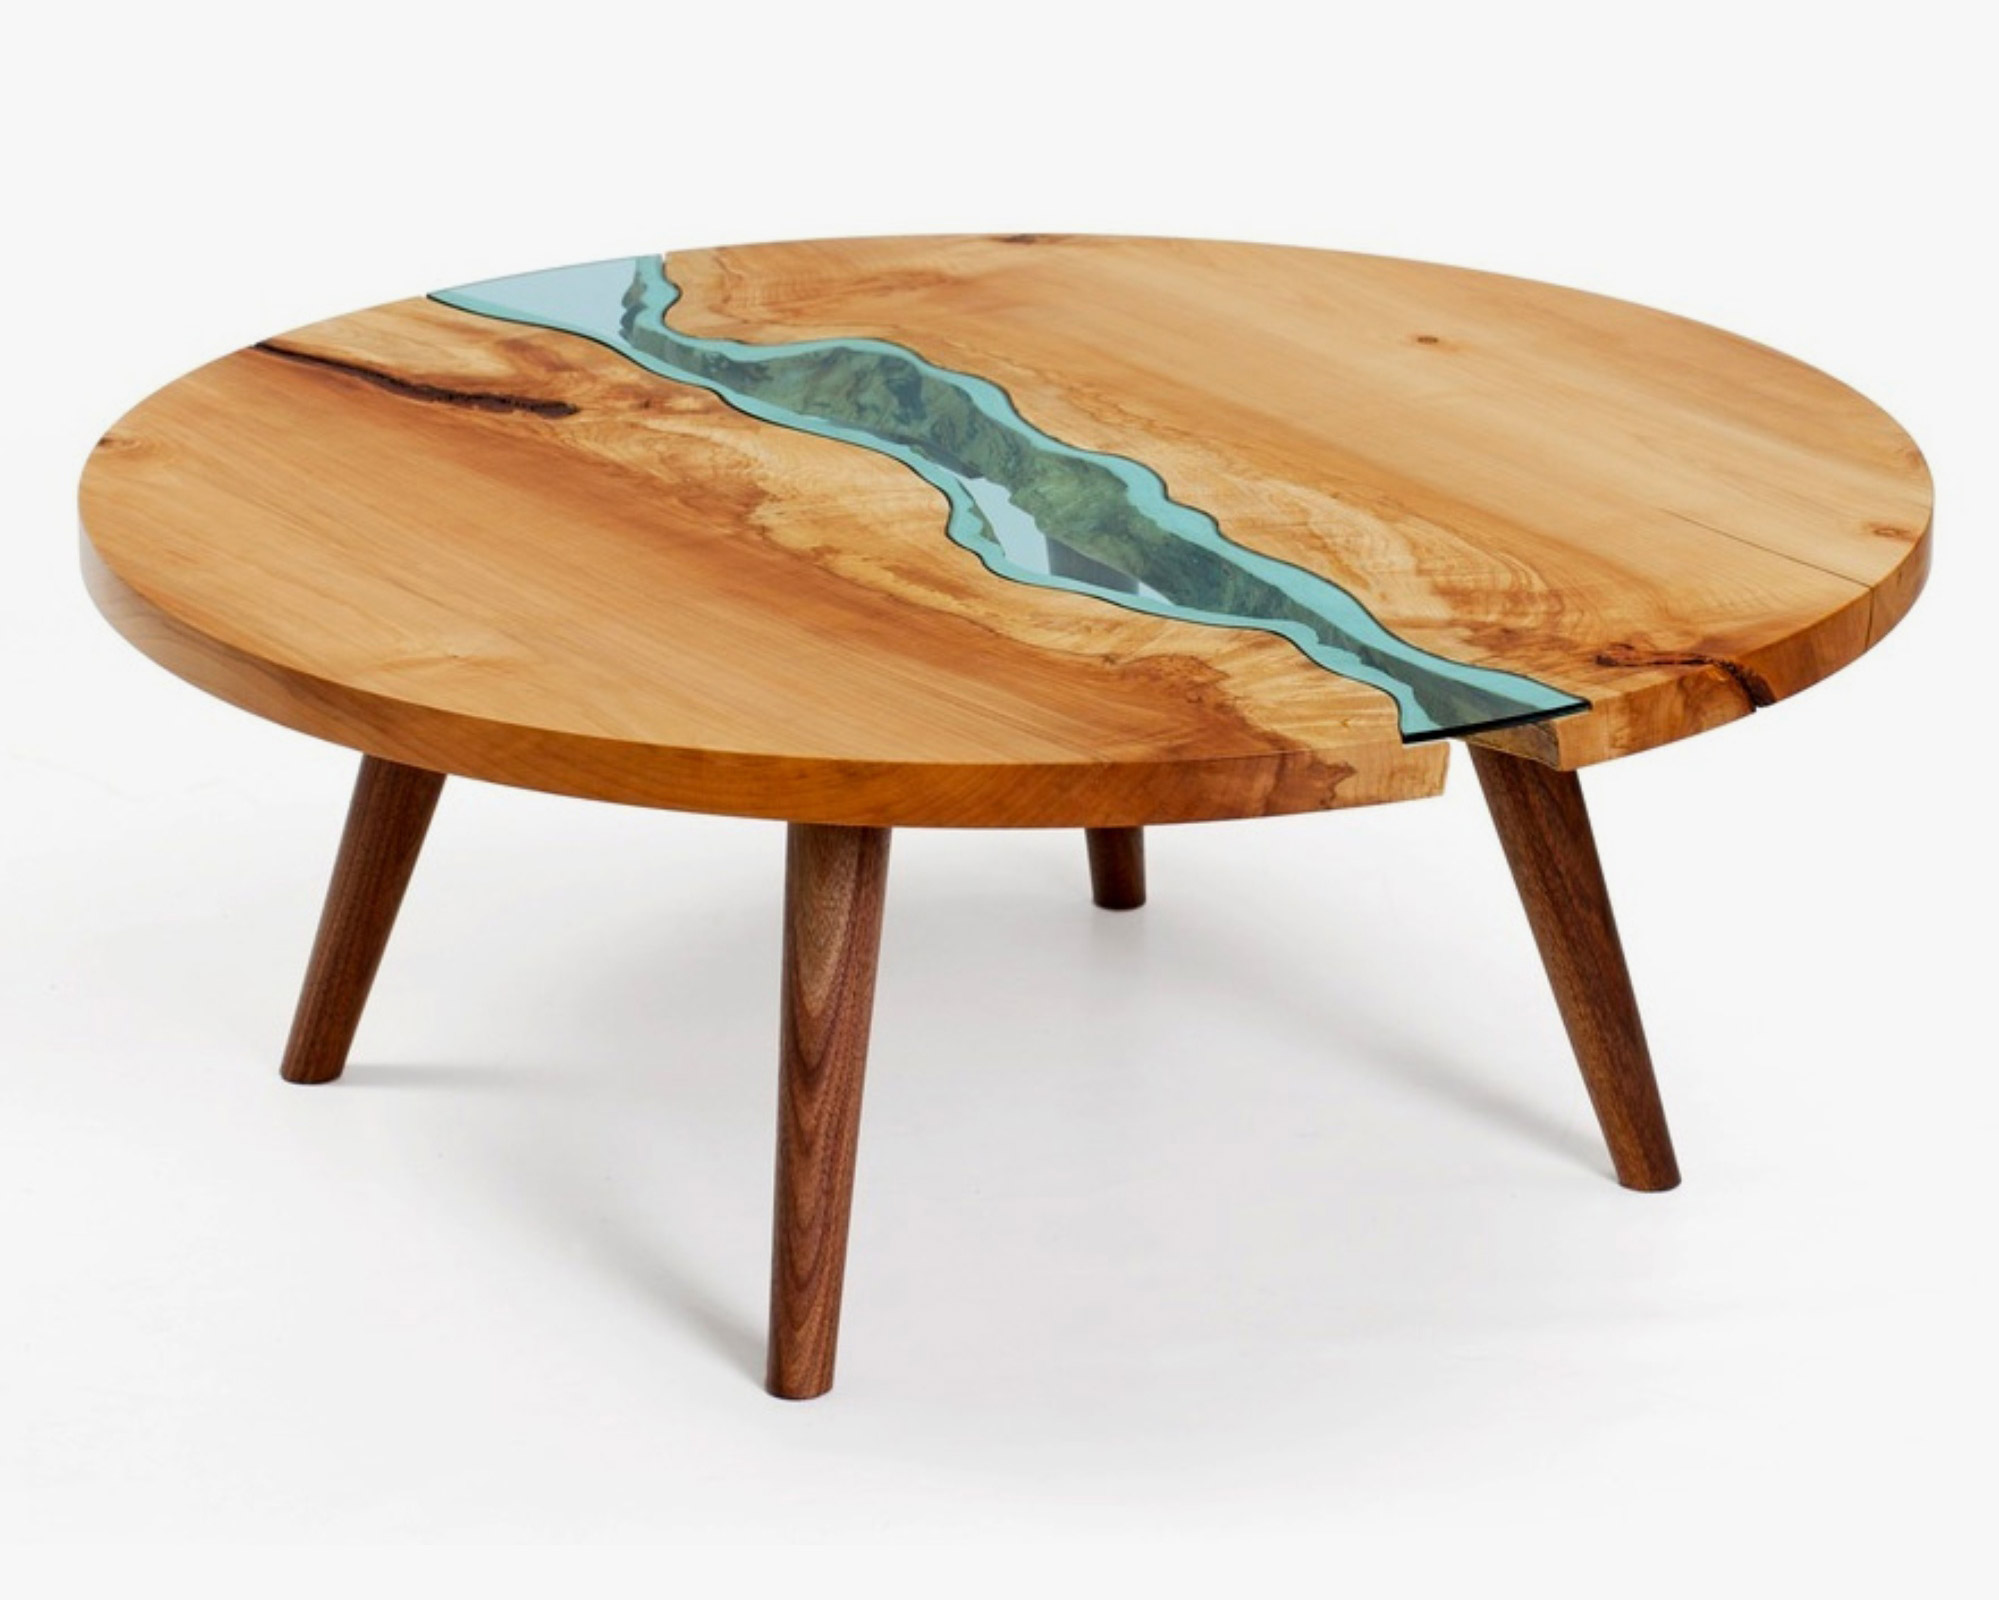 lake-river-furniture-greg-klassen-06